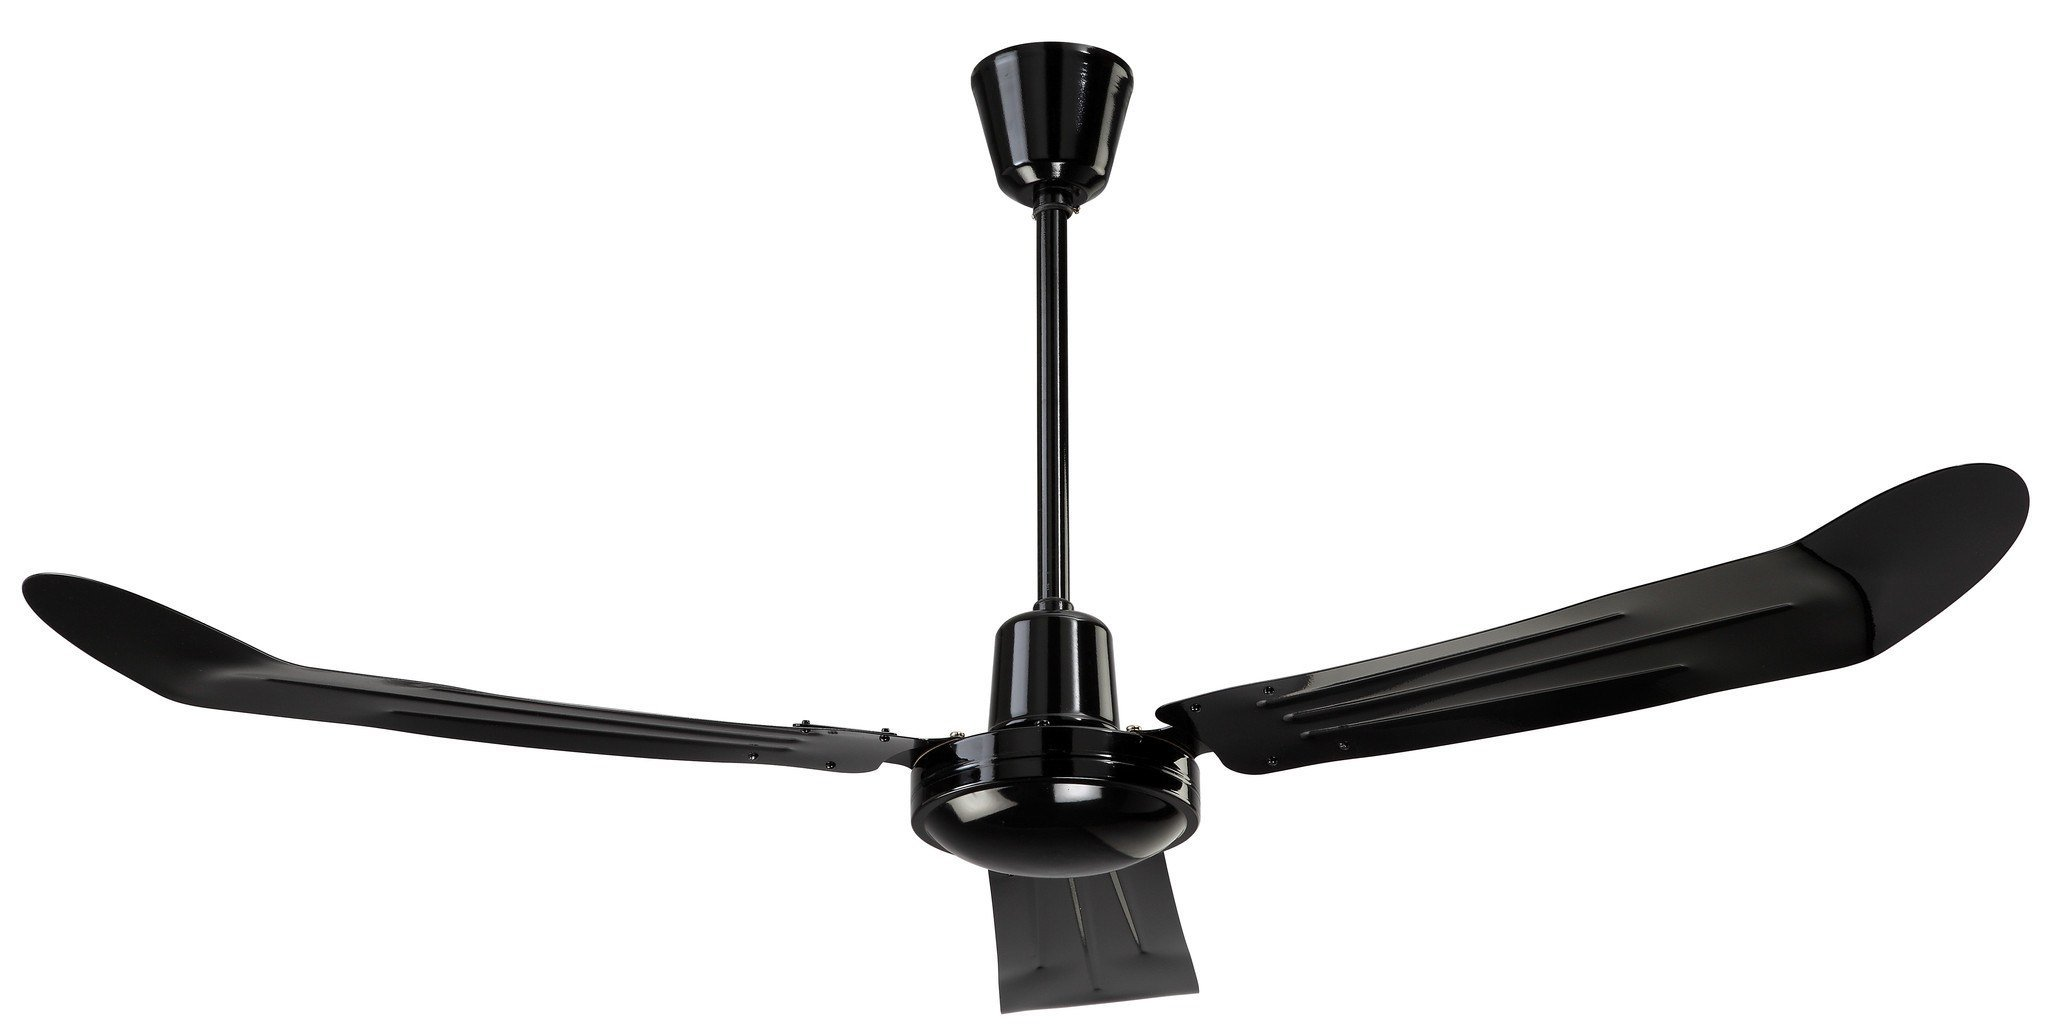 Canarm Black Variable Speed & Reversible 36 Inch Commercial Ceiling Fan 7100 CFM CP36BK by Canarm by Industrial Fans Direct